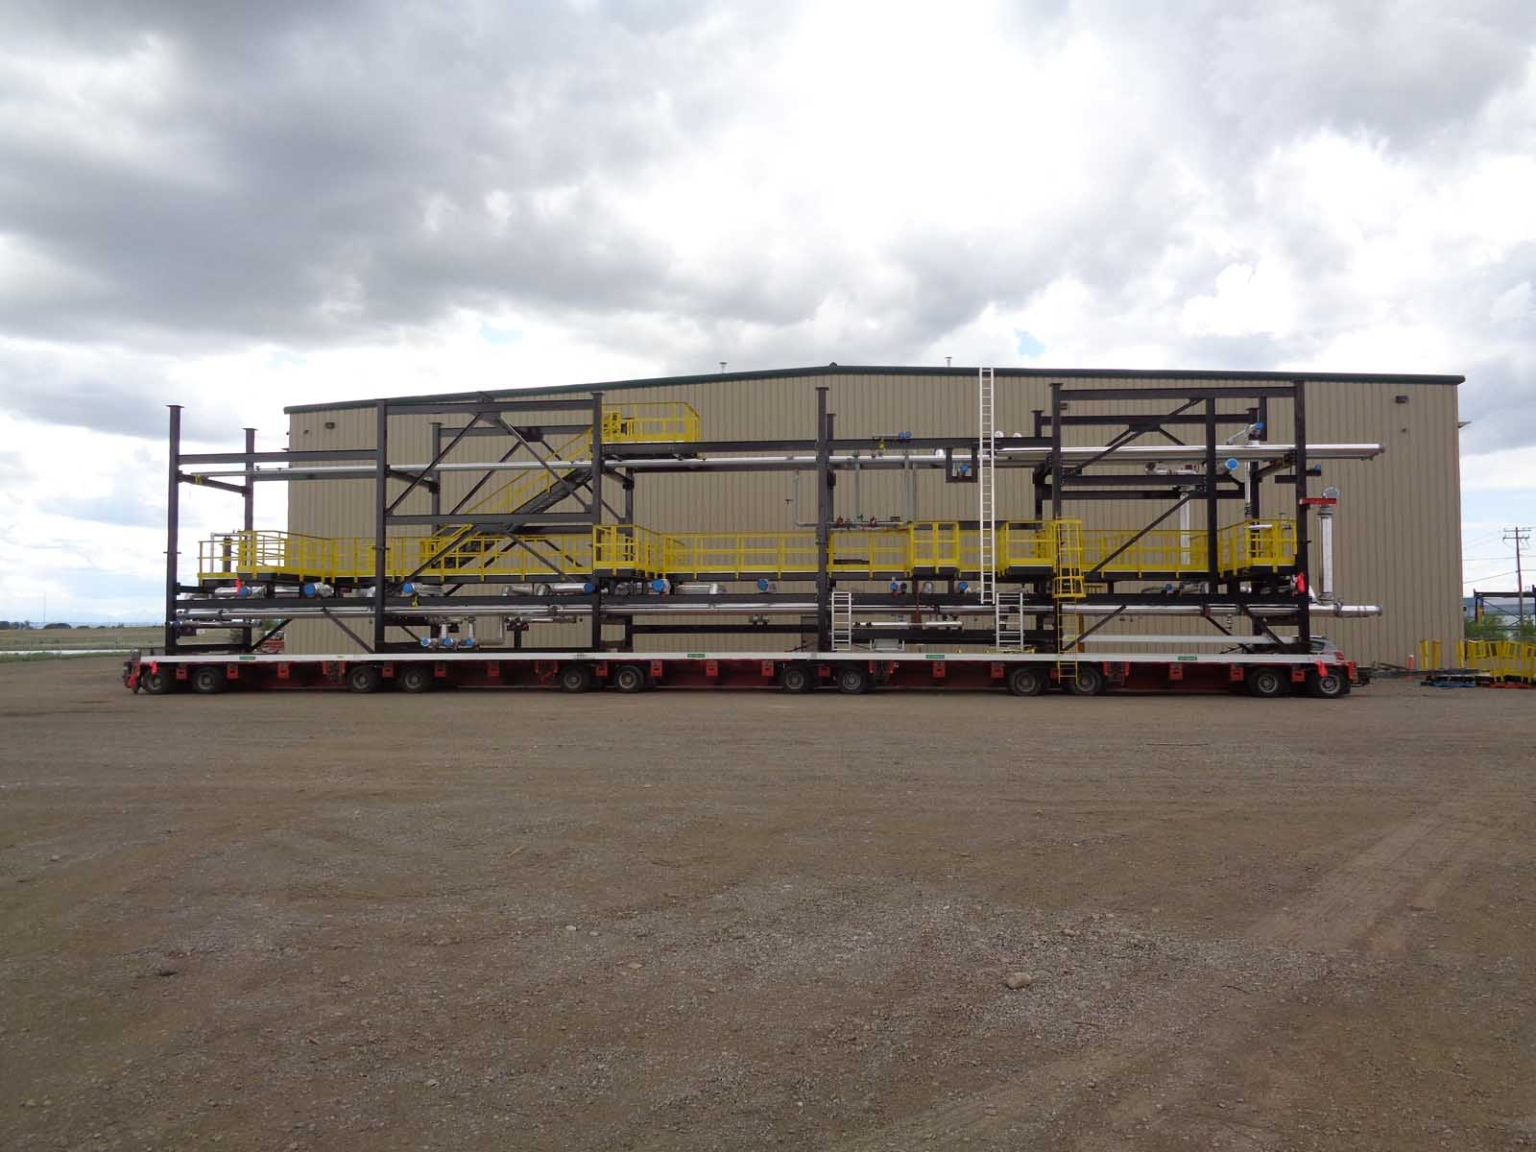 Oil and Gas structure on ginormous trailer